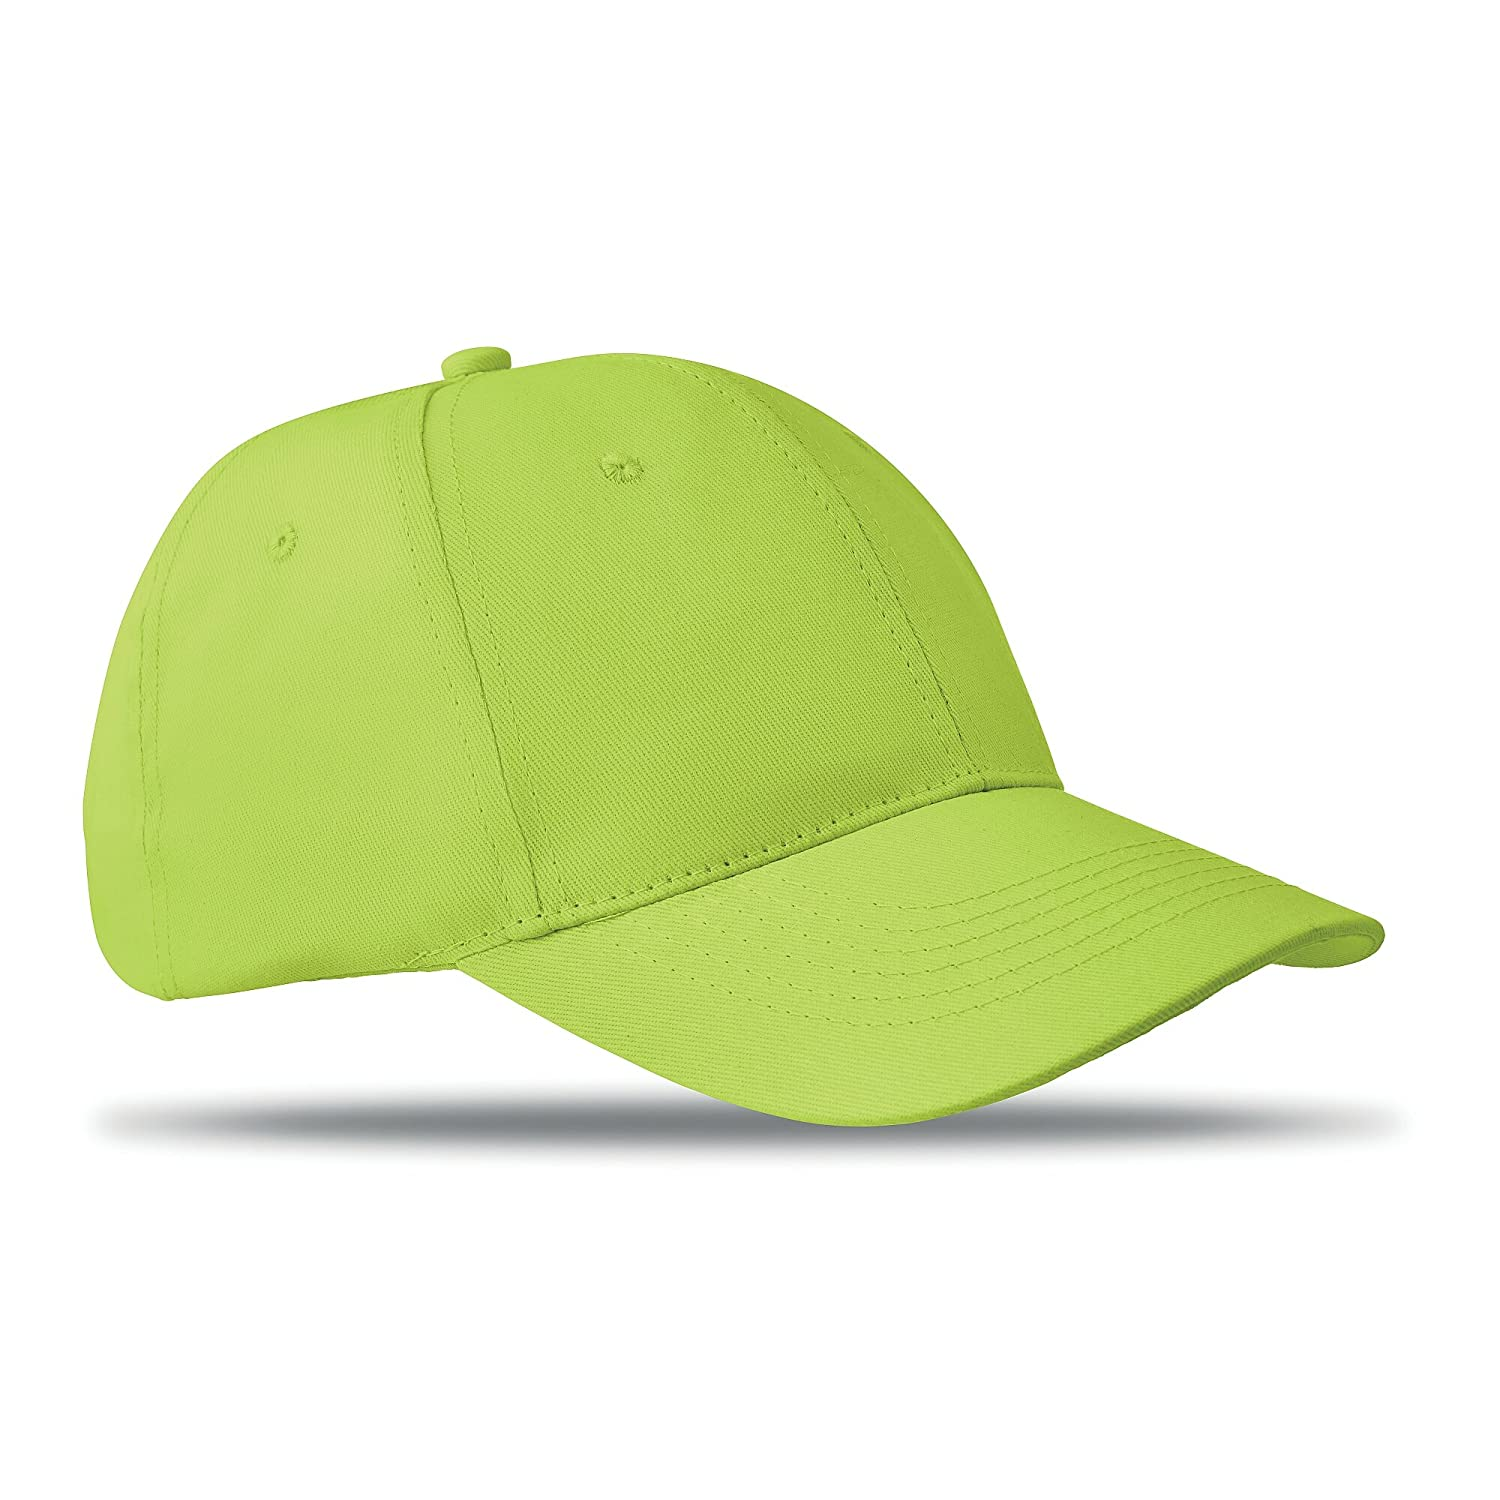 6 panel, structured cap, self fastener closure 100% cotton - yellow PromotionGift 10201860